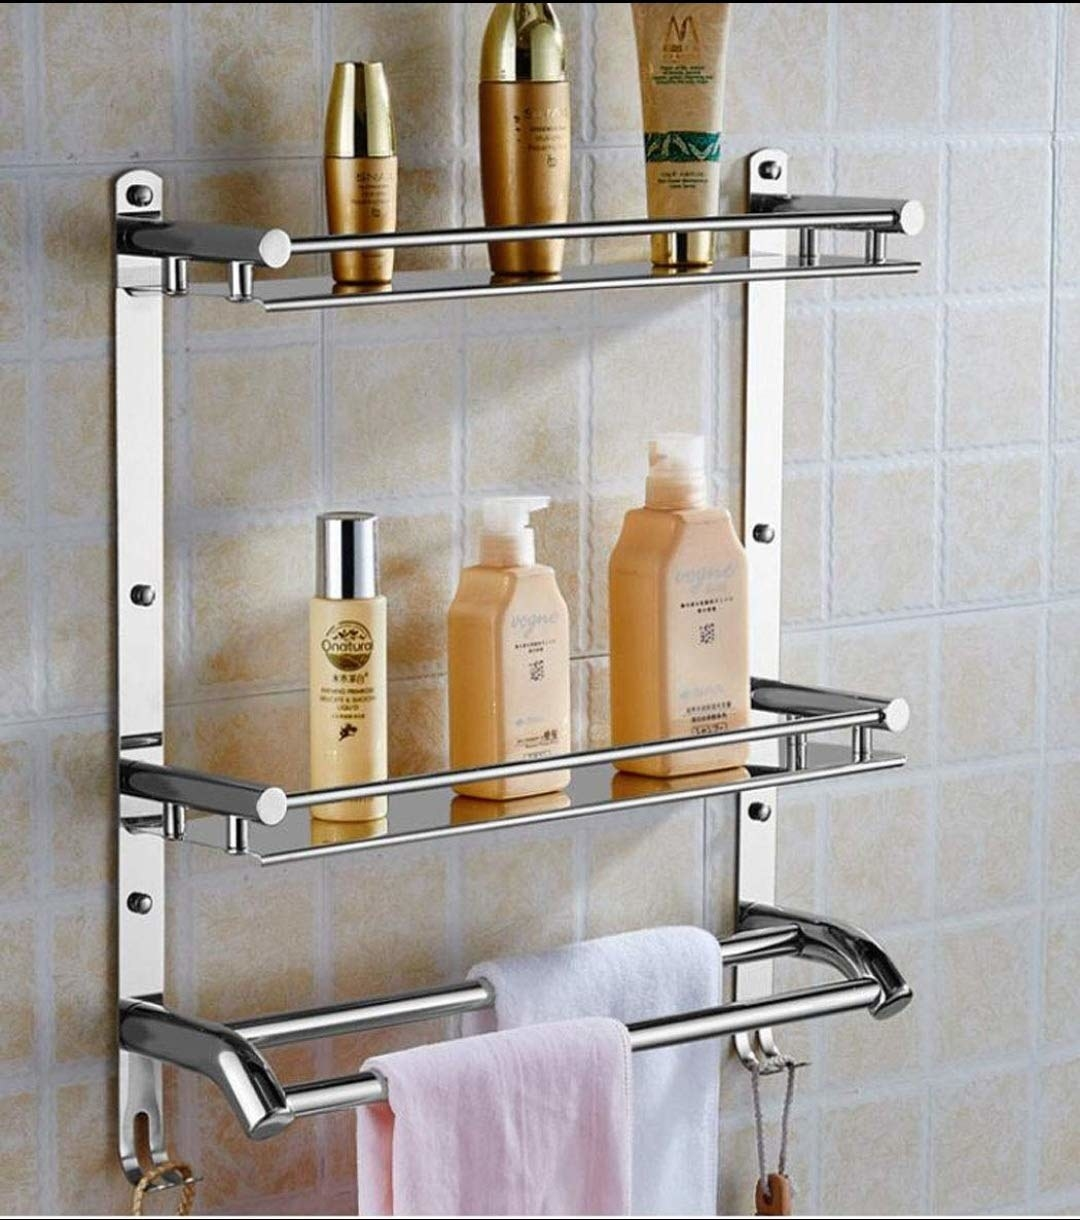 A stainless steel 3-tier bathroom rack with hooks and towel holders